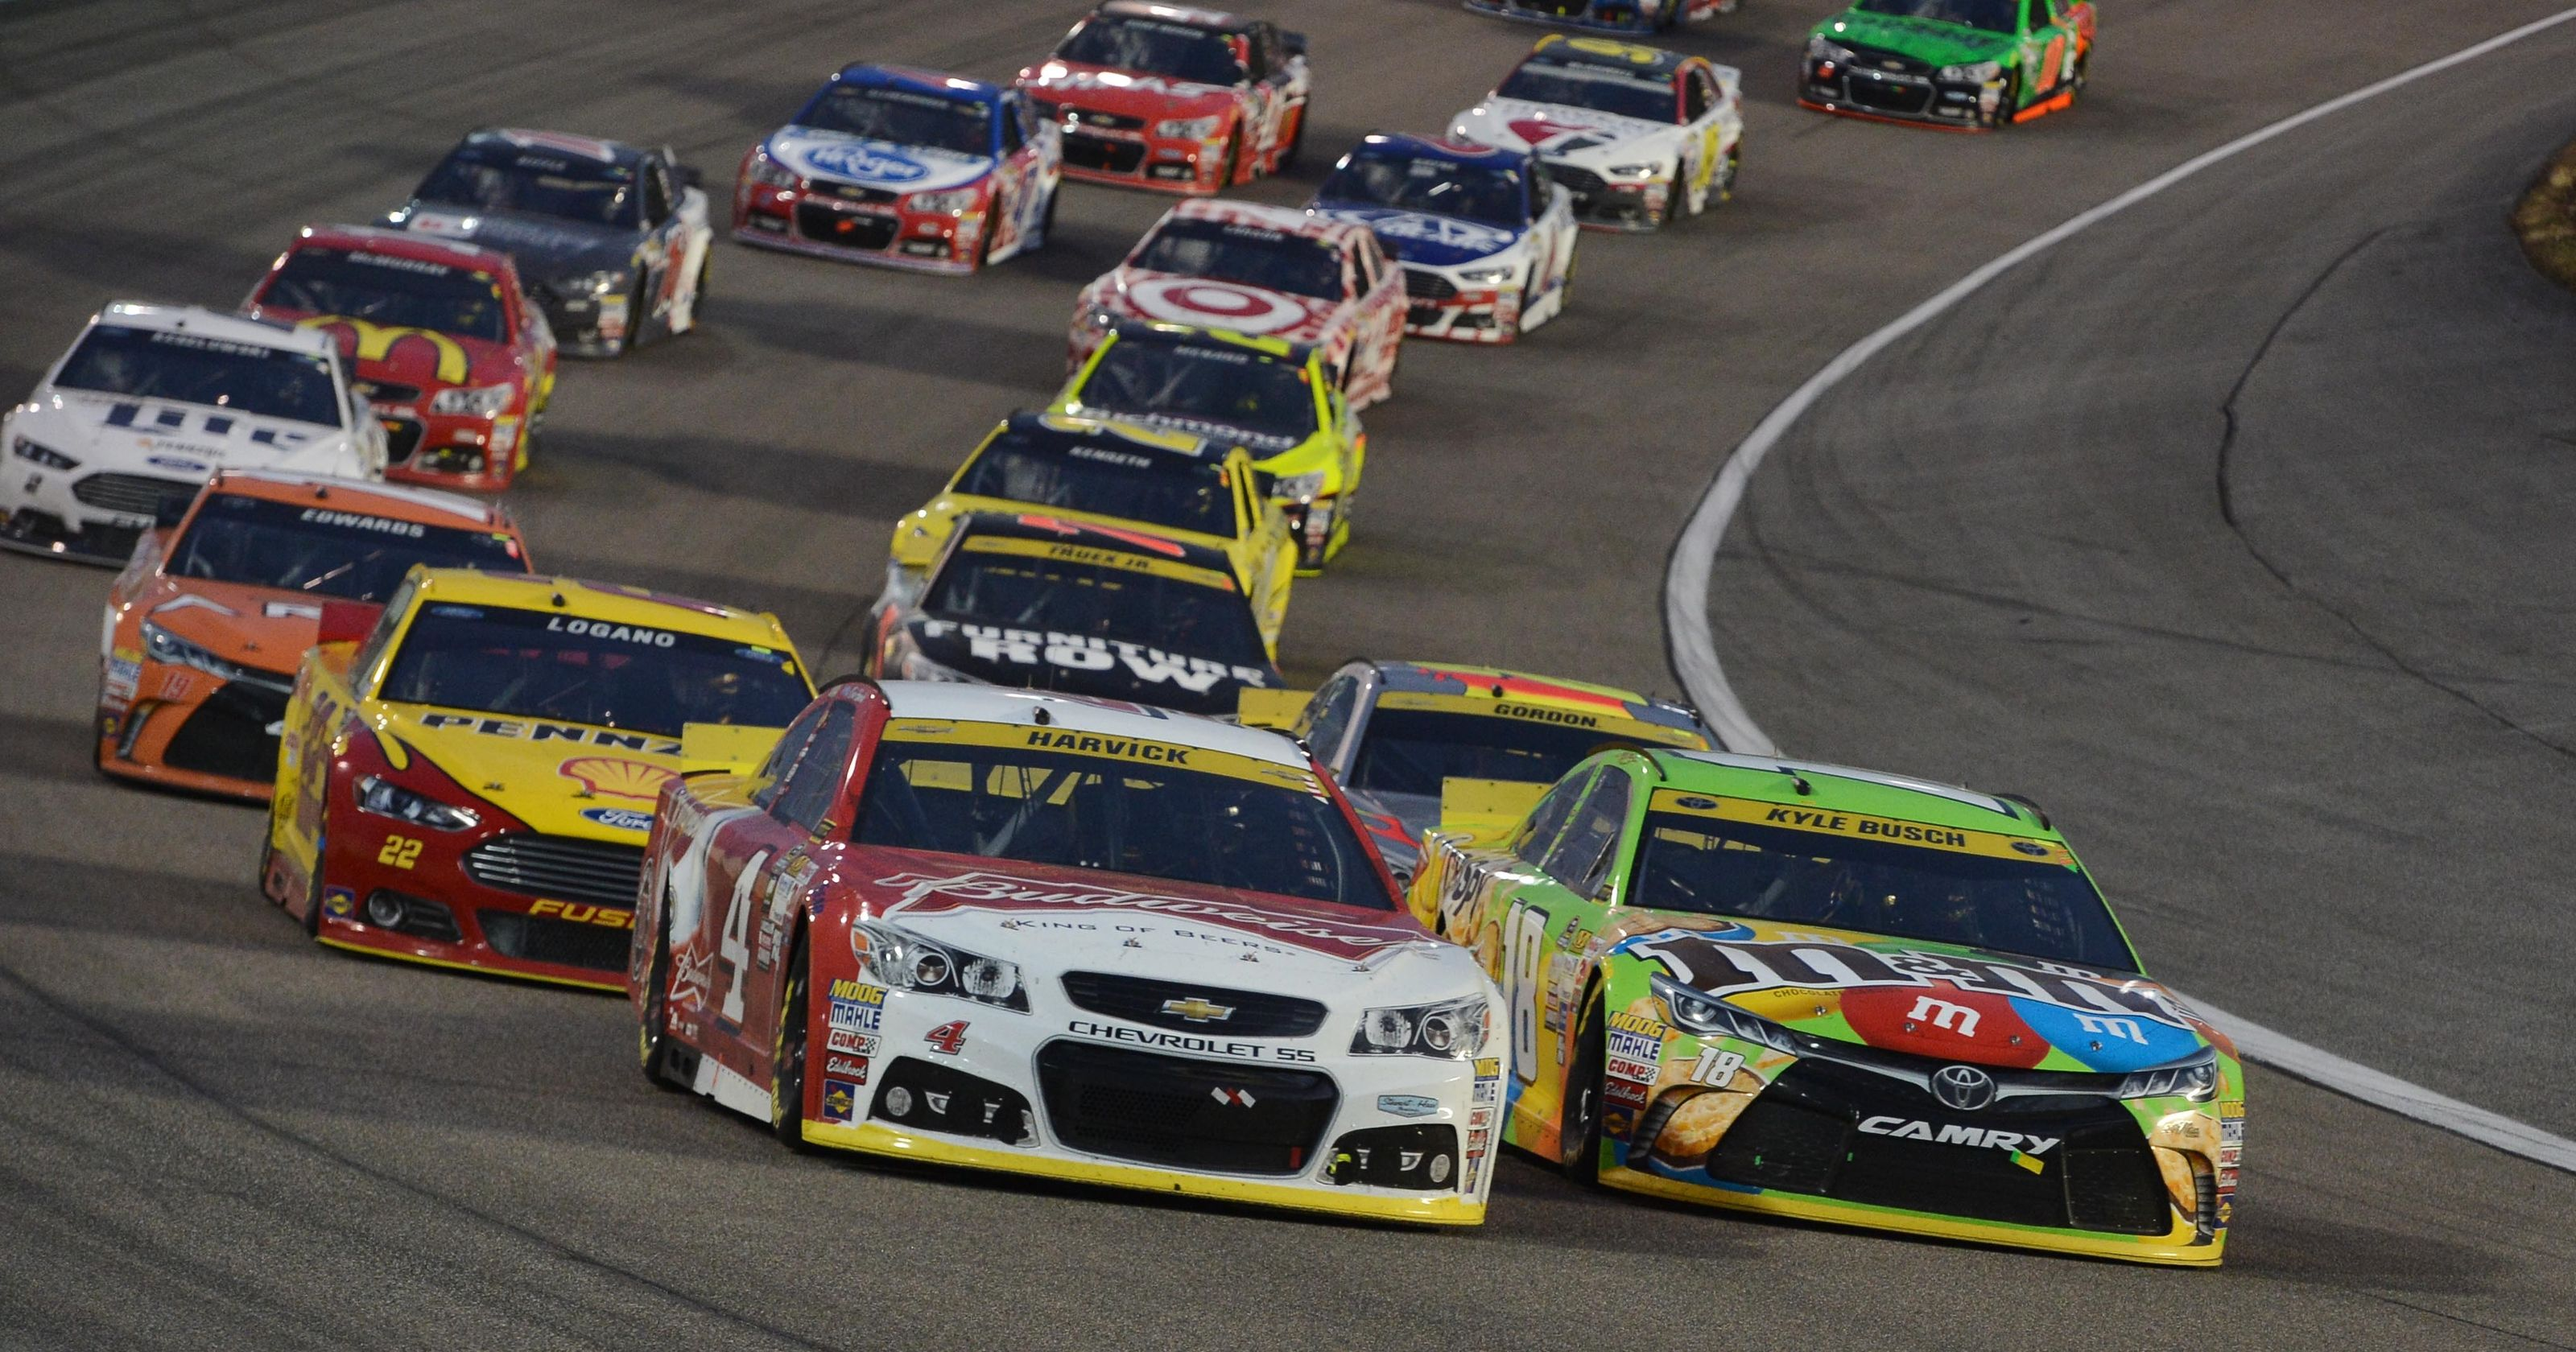 Full 2016 NASCAR Sprint Cup Series schedule